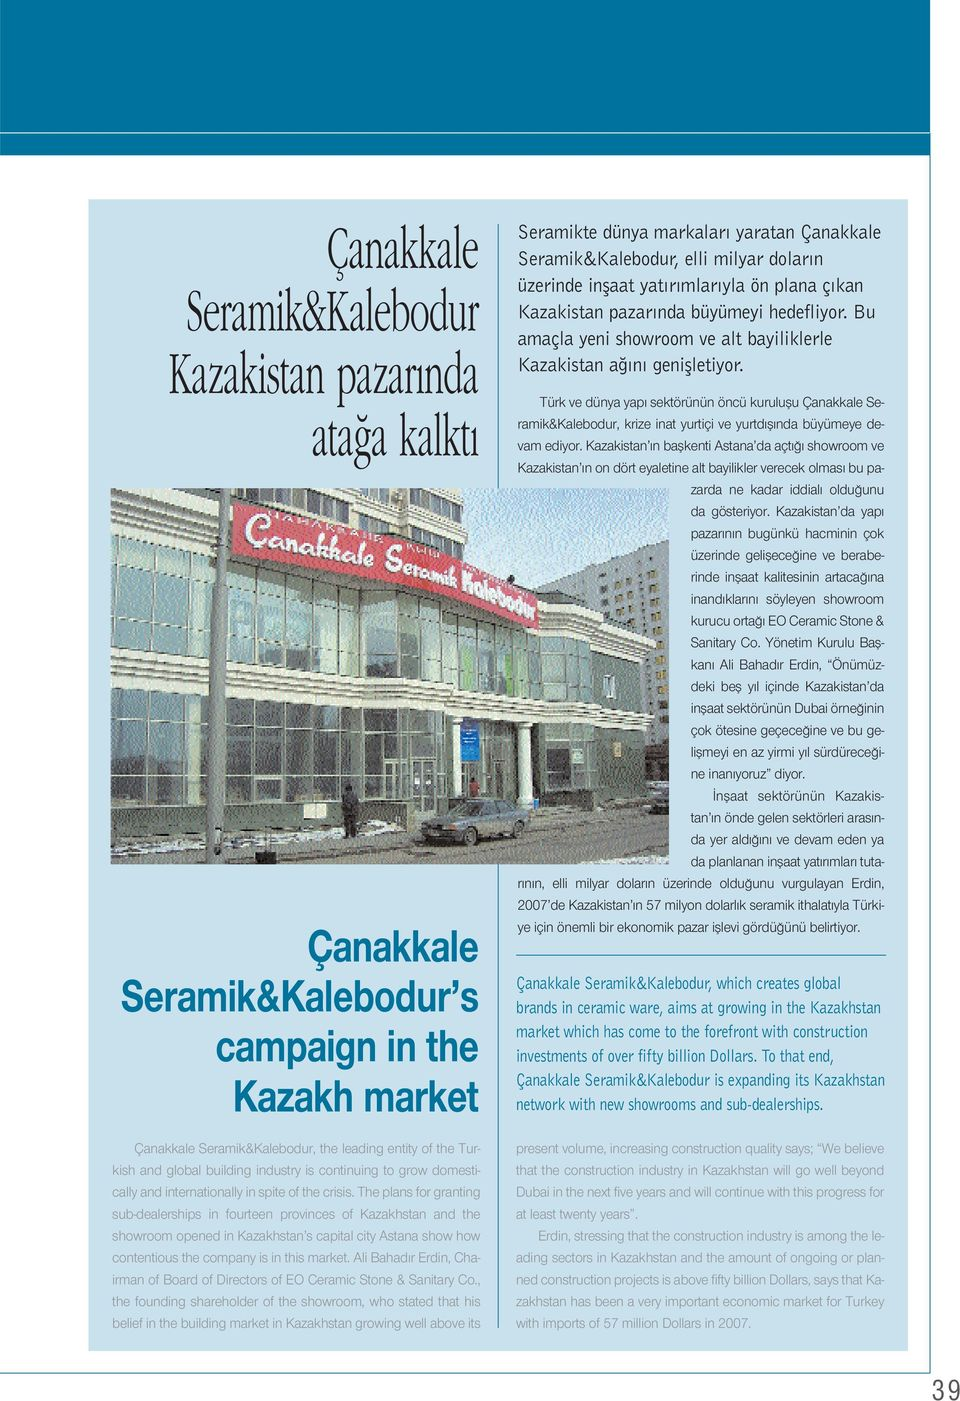 The plans for granting sub-dealerships in fourteen provinces of Kazakhstan and the showroom opened in Kazakhstan s capital city Astana show how contentious the company is in this market.